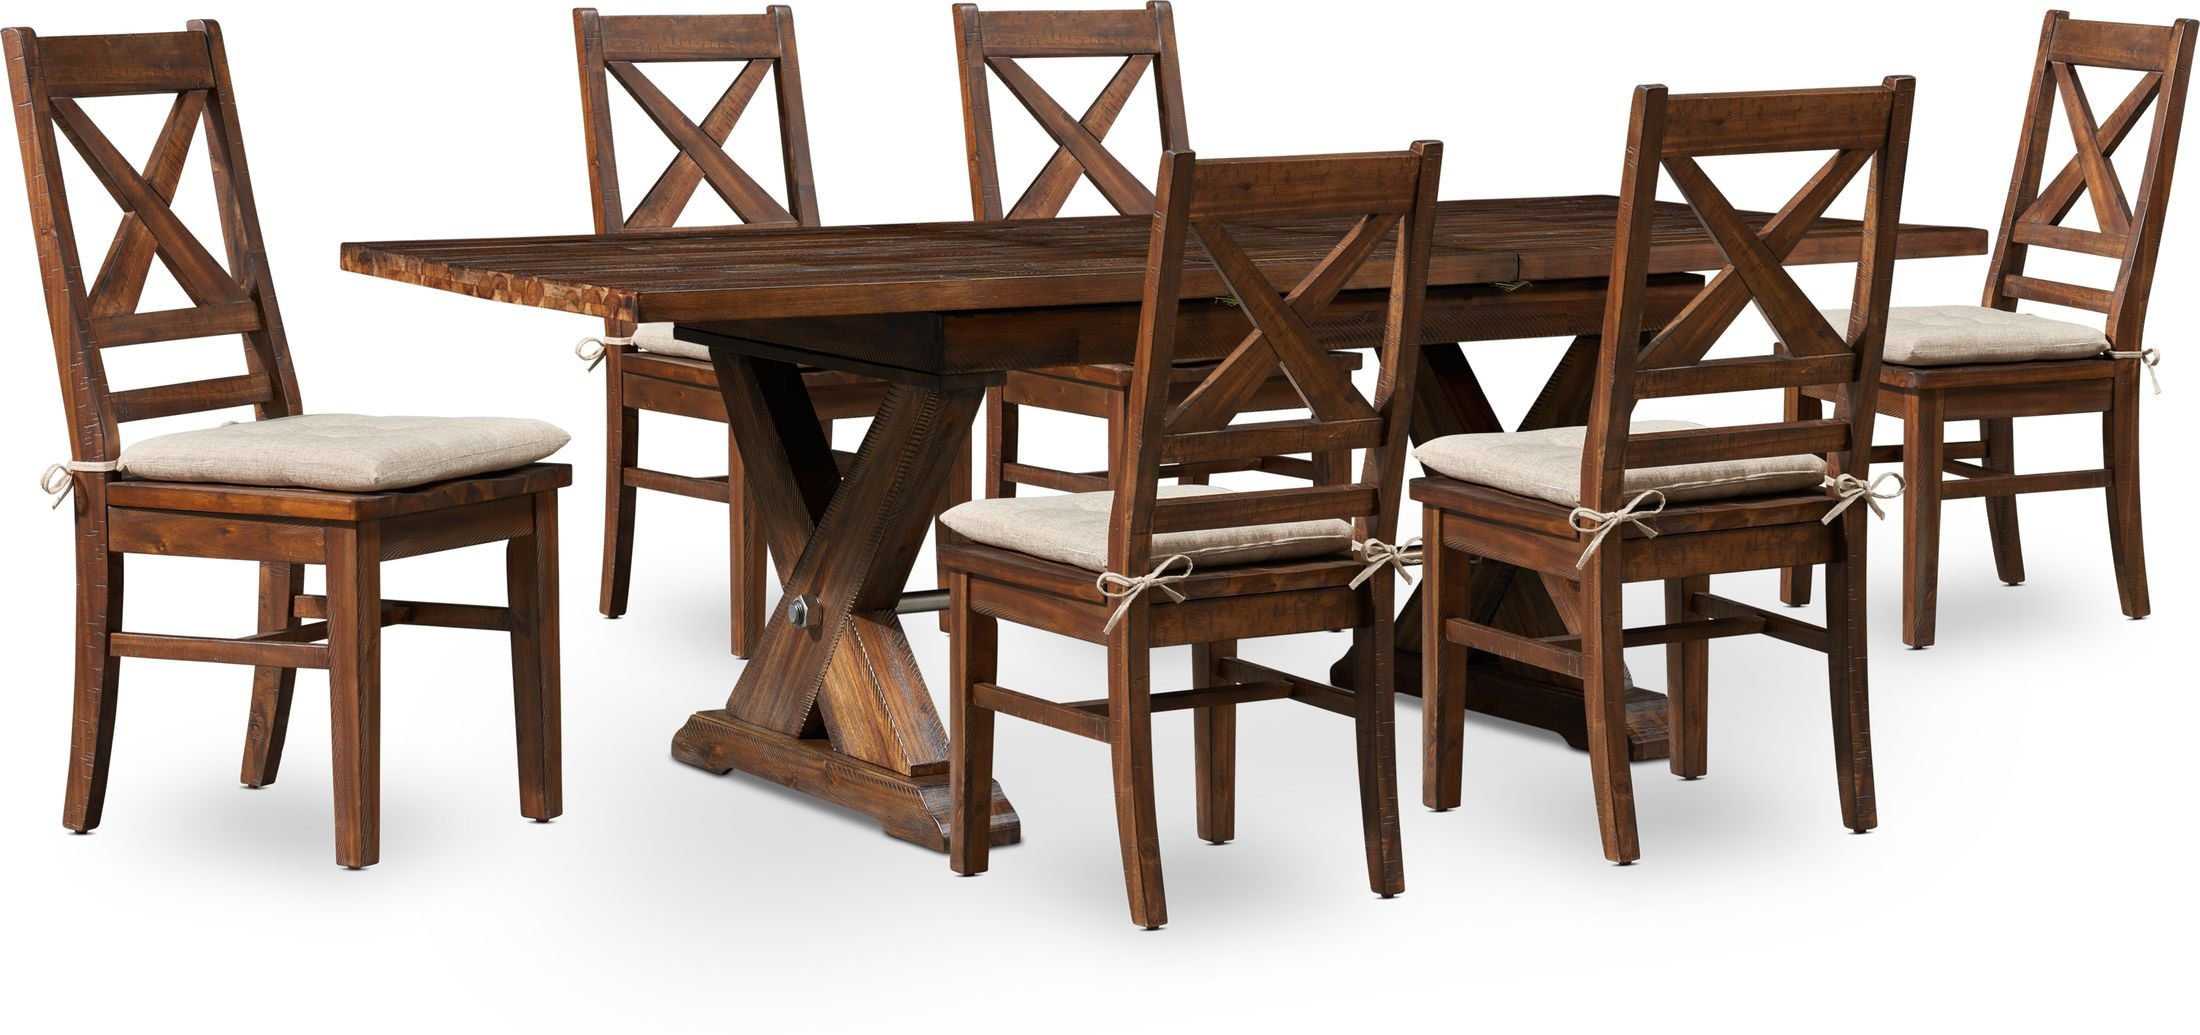 Dining Room Furniture - Shiloh Dining Table and 6 Dining Chairs